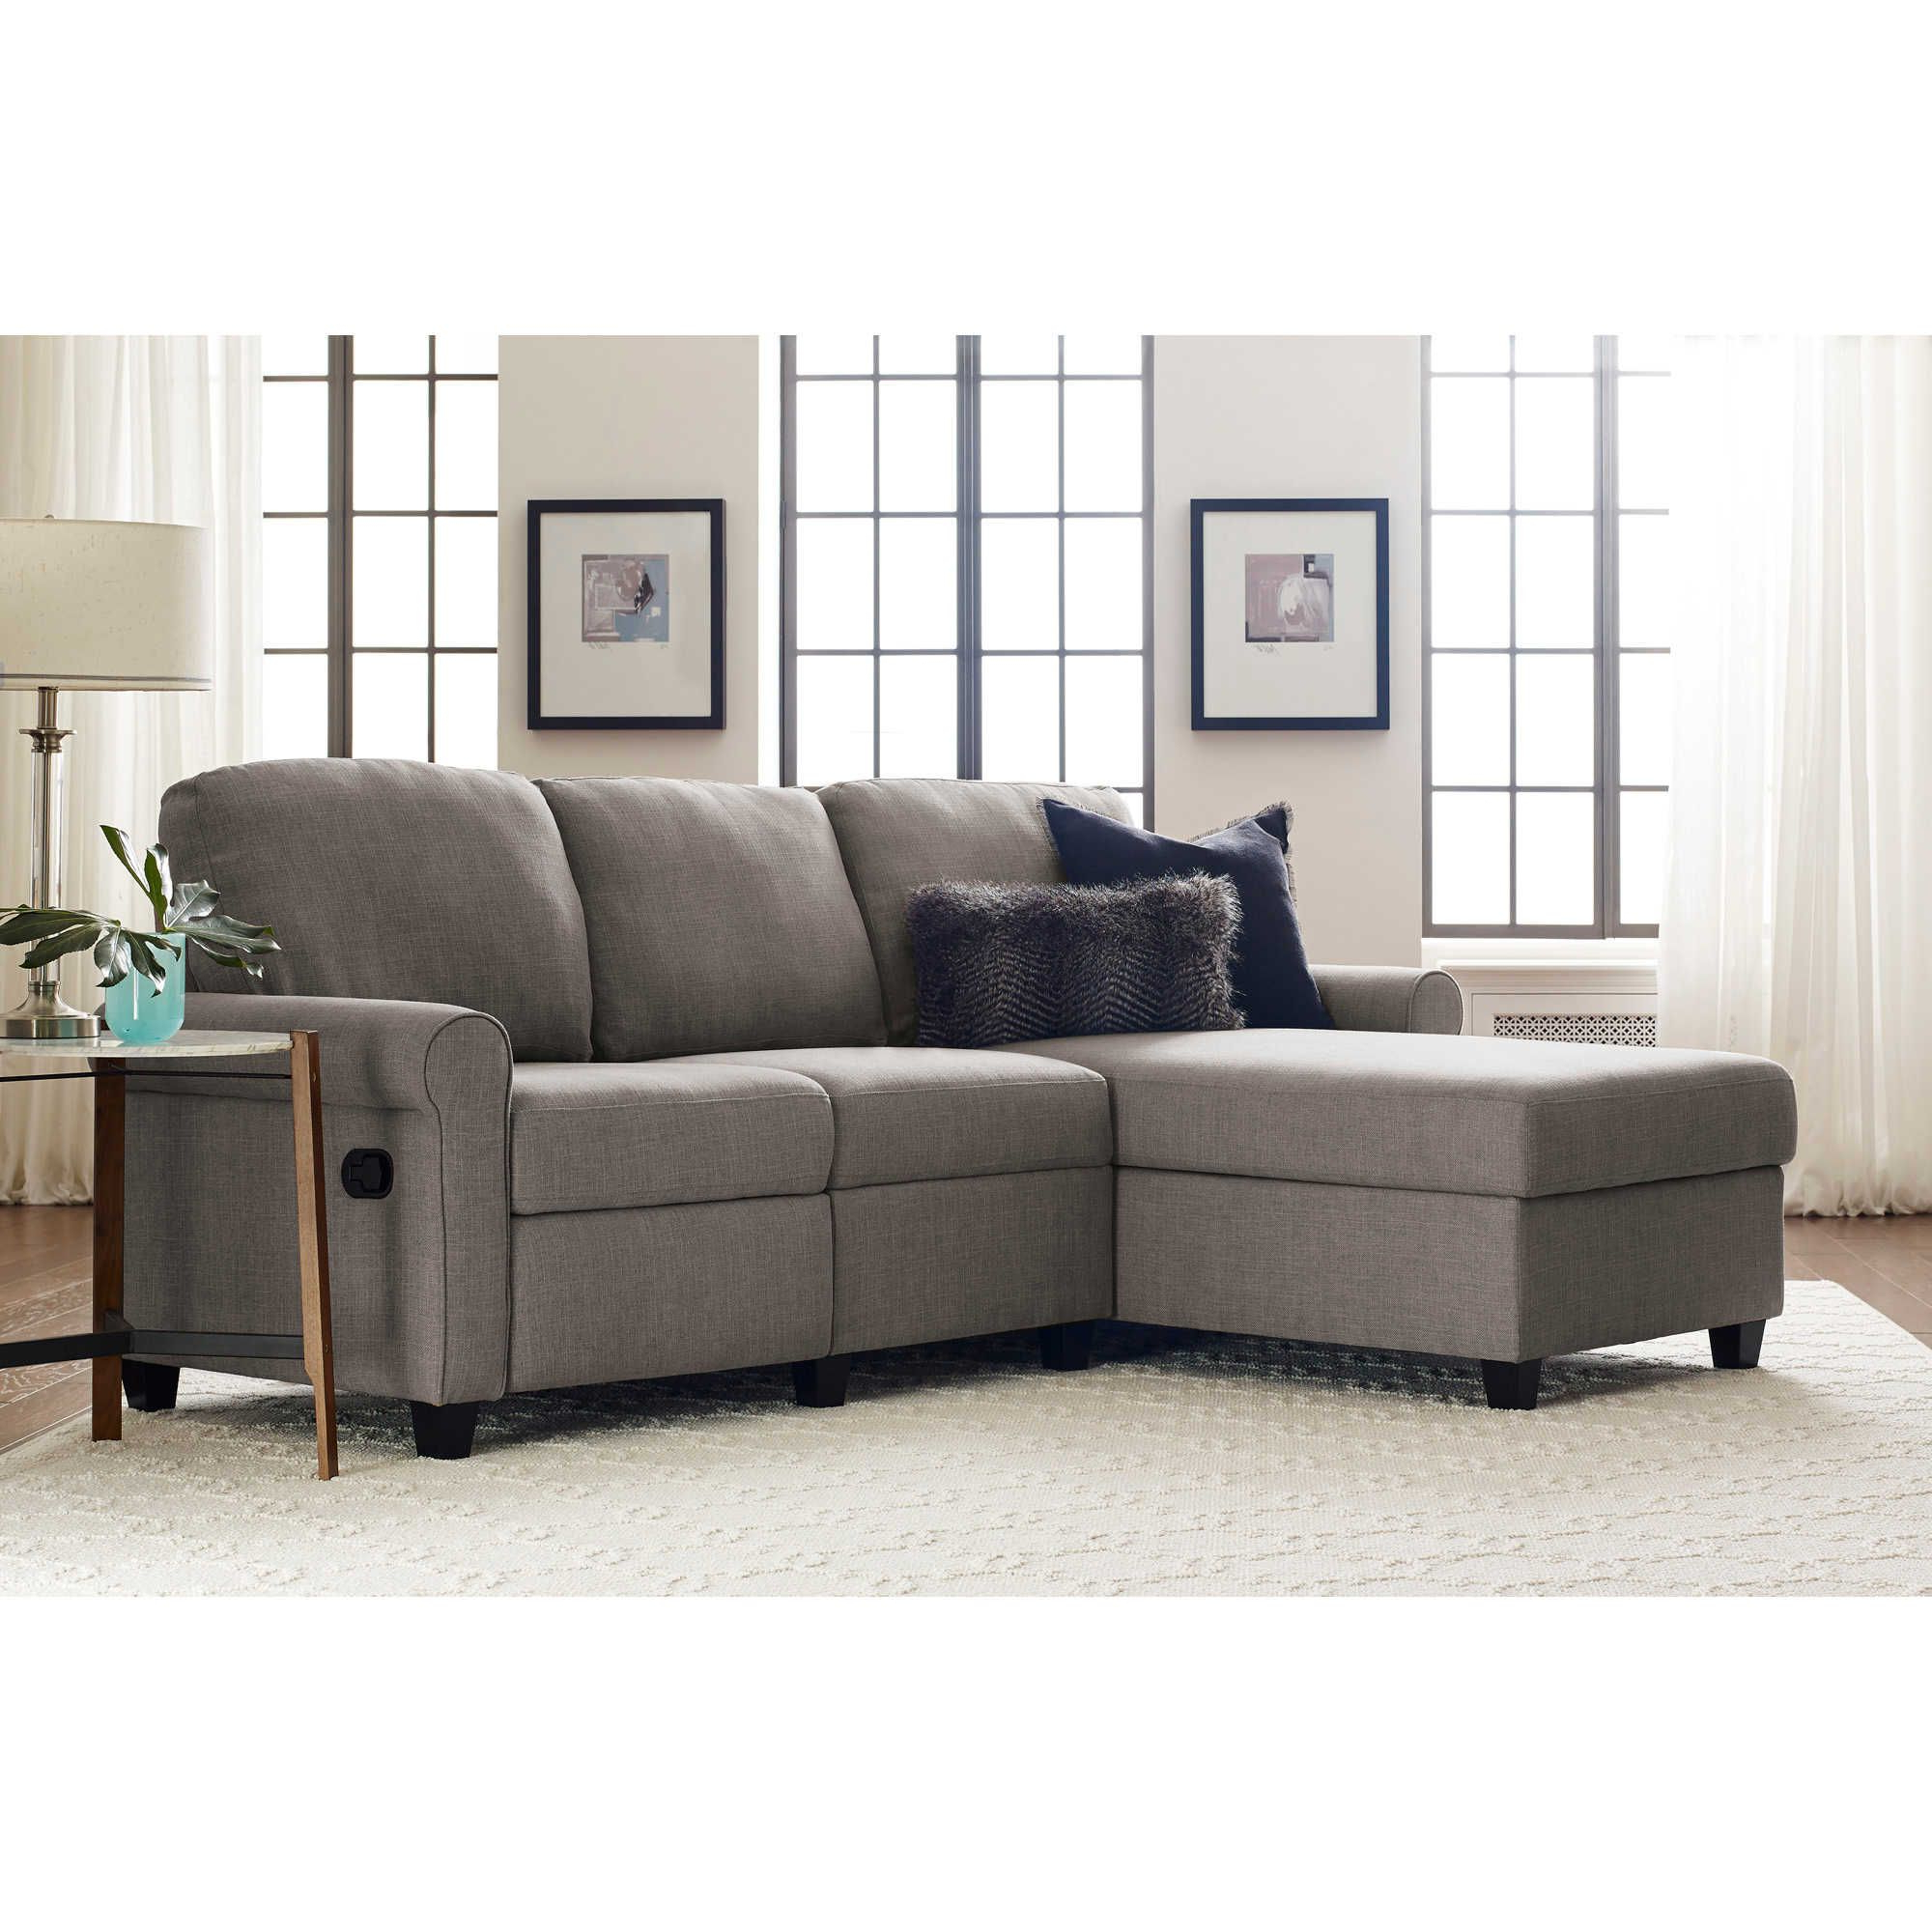 Most Recent Serta® Copenhagen Reclining Sectional Sofa With Storage Intended For Copenhagen Reclining Sectional Sofas With Right Storage Chaise (View 1 of 20)